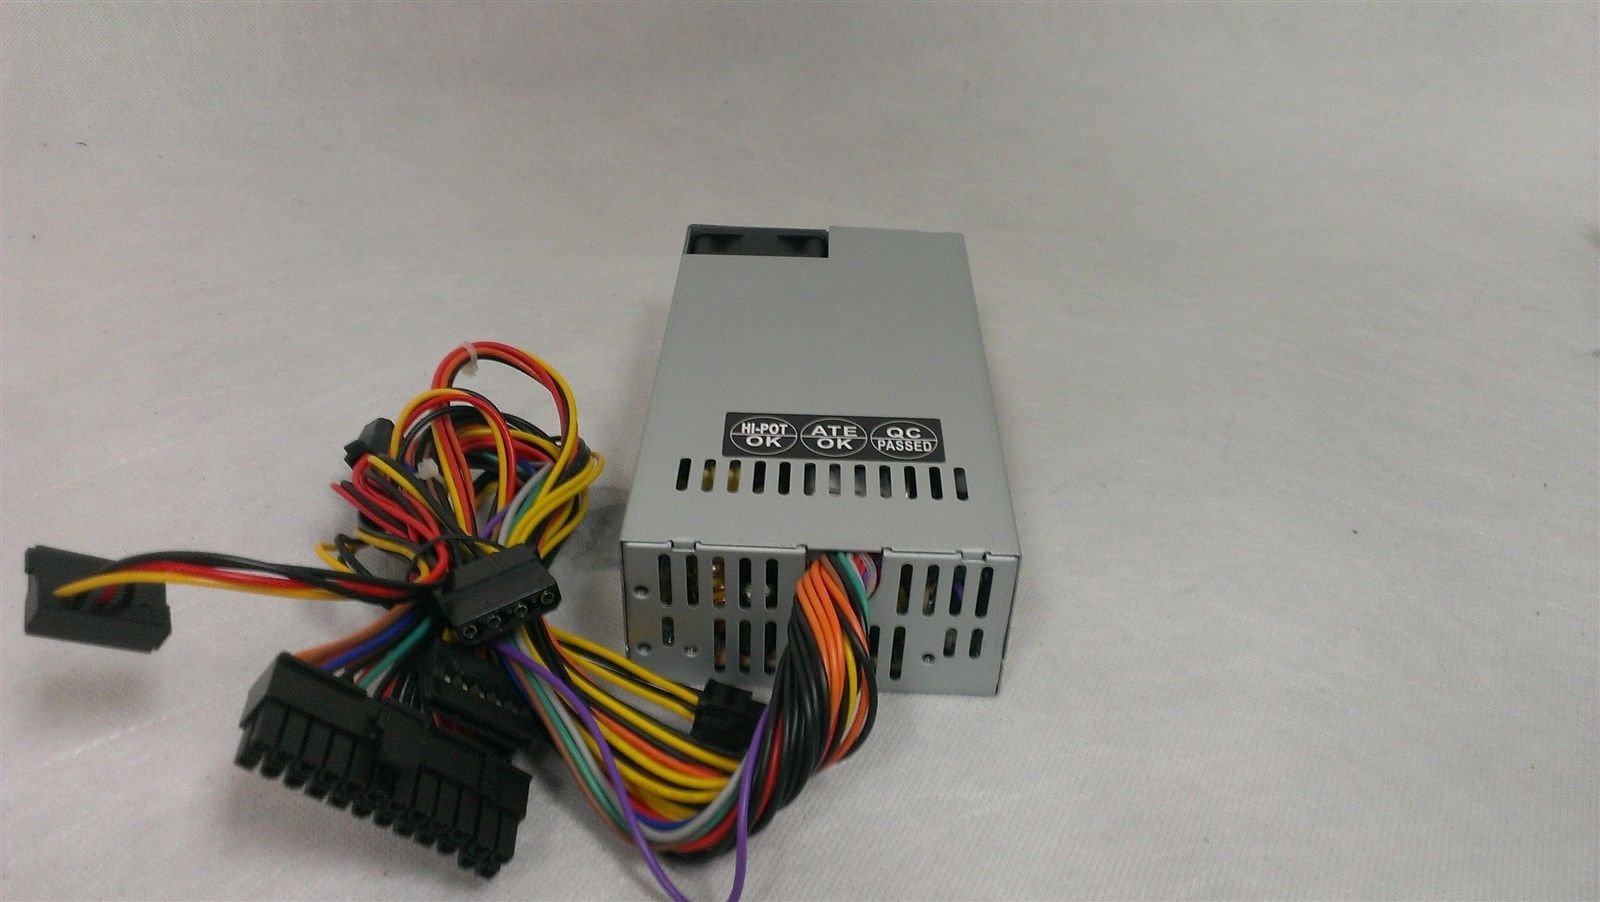 250W HP Slimline s7420n s7120n s3307 DPS-108DB-1A Replace Power Supply CY2.17